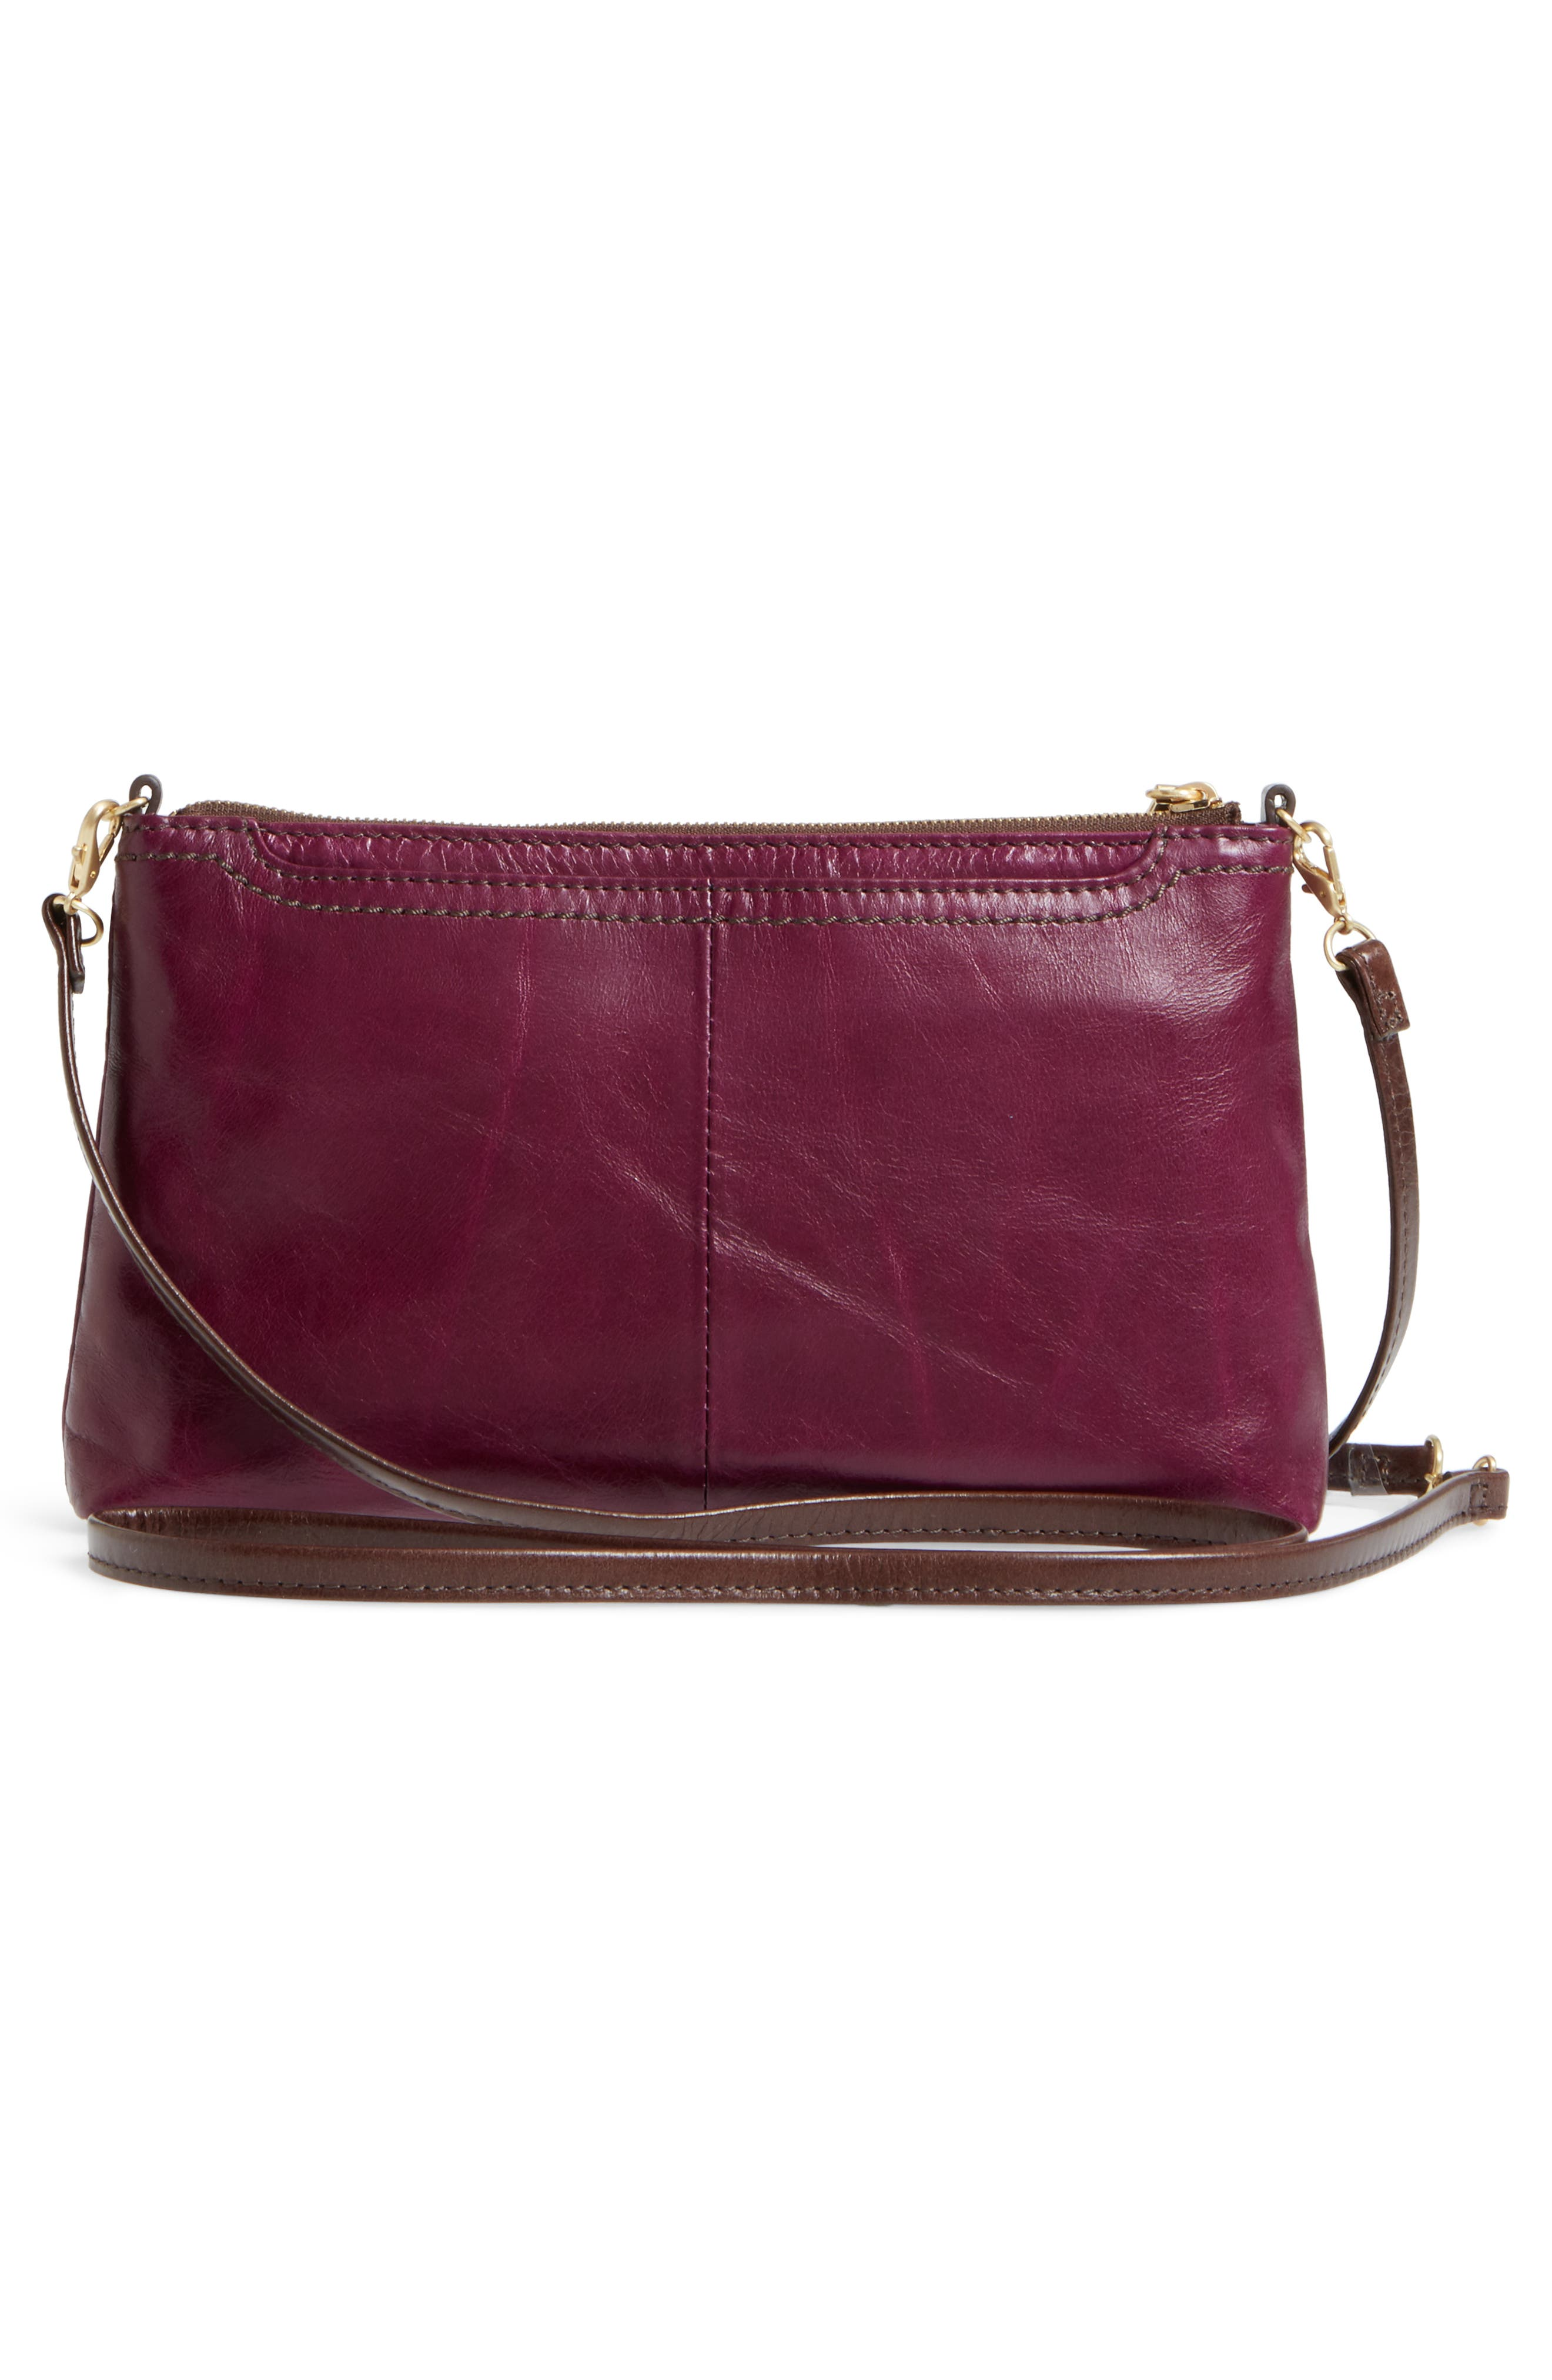 'Darcy' Leather Crossbody Bag,                             Alternate thumbnail 57, color,